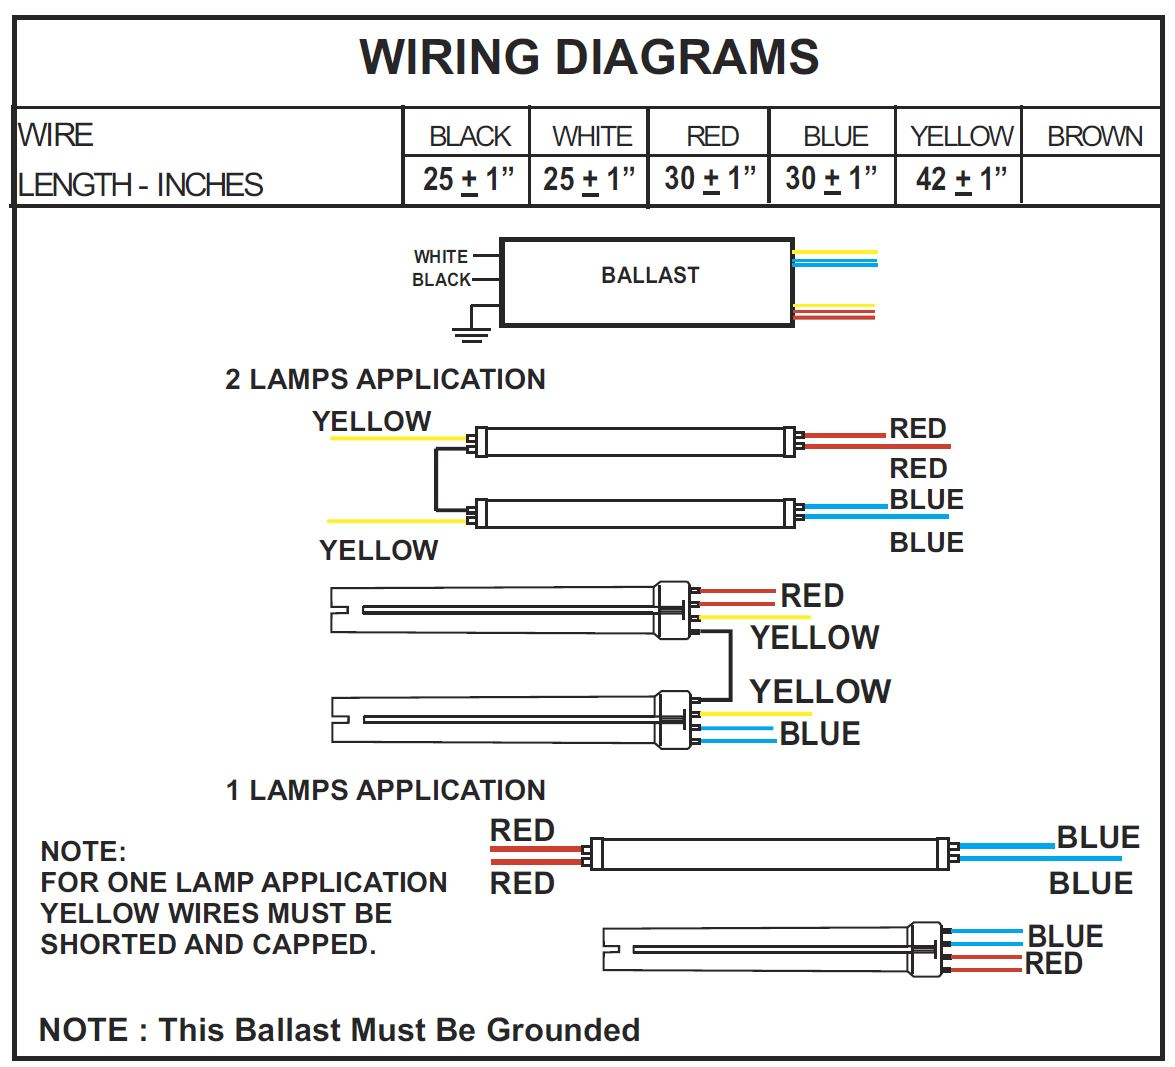 T5 light fixtures wiring diagram wiring diagrams dual ballast light fixture lighting designs rha unv 254 lt5 2 lamp t5 multi purpose electronic ballast t5 light fixtures wiring diagram arubaitofo Images